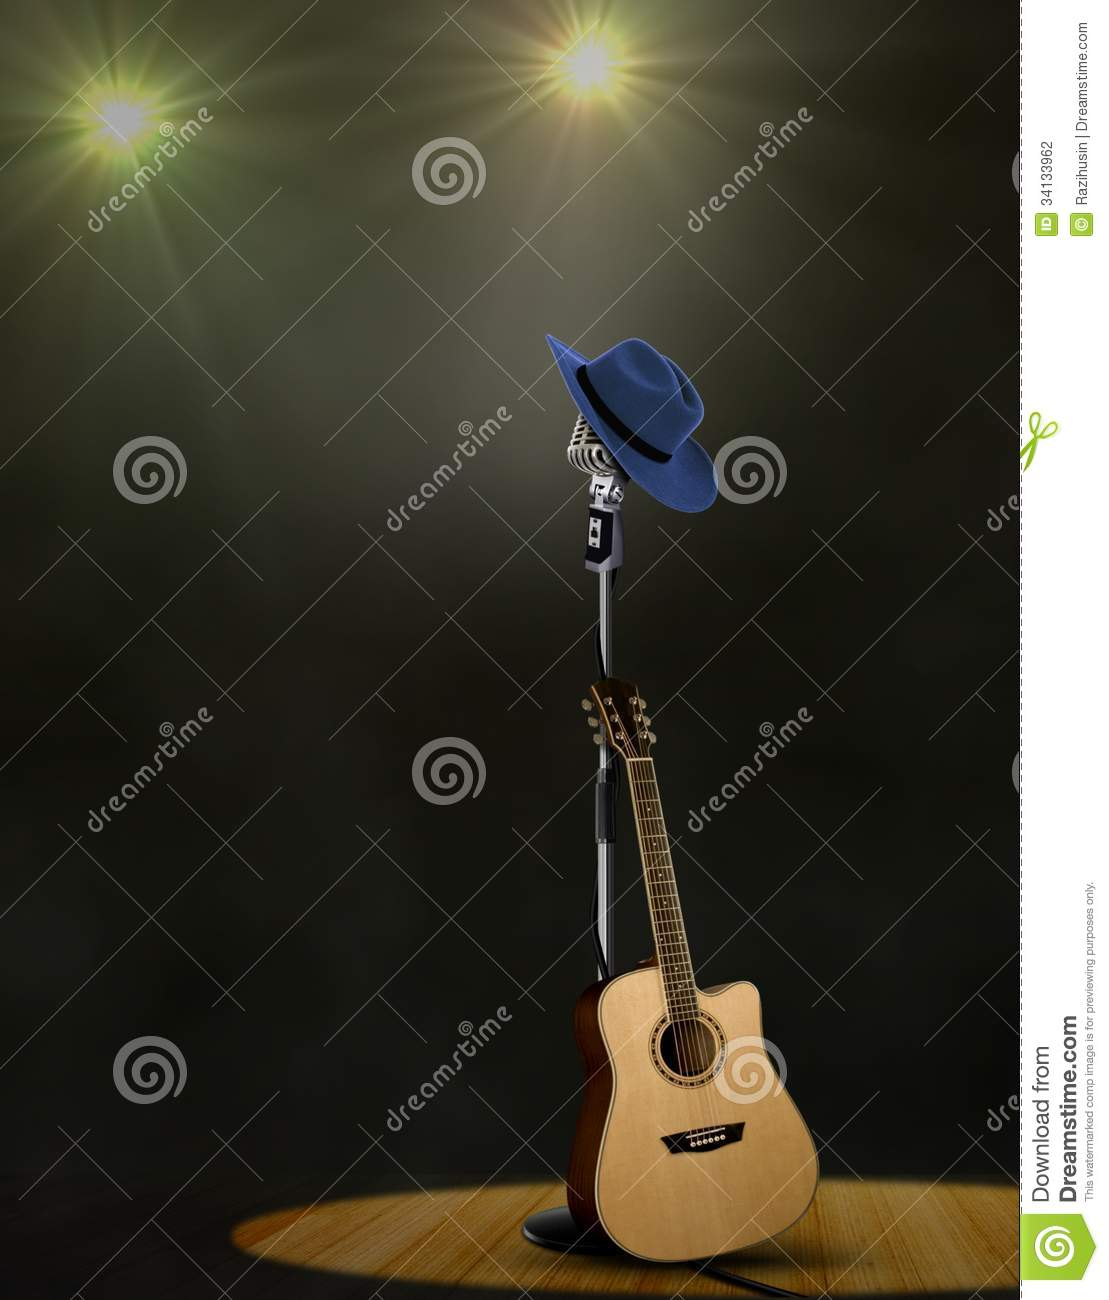 Guitar And Microphone On Stage Stock Illustration  Image. Project Manager Software Download. Master Charge Credit Card 30 Day Pay Day Loan. Fountain Valley Locksmith Wsj Wine Offer Code. Pmp Exam Prep Eighth Edition Pdf. Mastercard Service Number Bad Faith Insurance. Physical Therapy Michigan Hemet Fence Company. Costs Of Long Term Care Insurance. Barclay Mastercard Login Trendnet Router Login